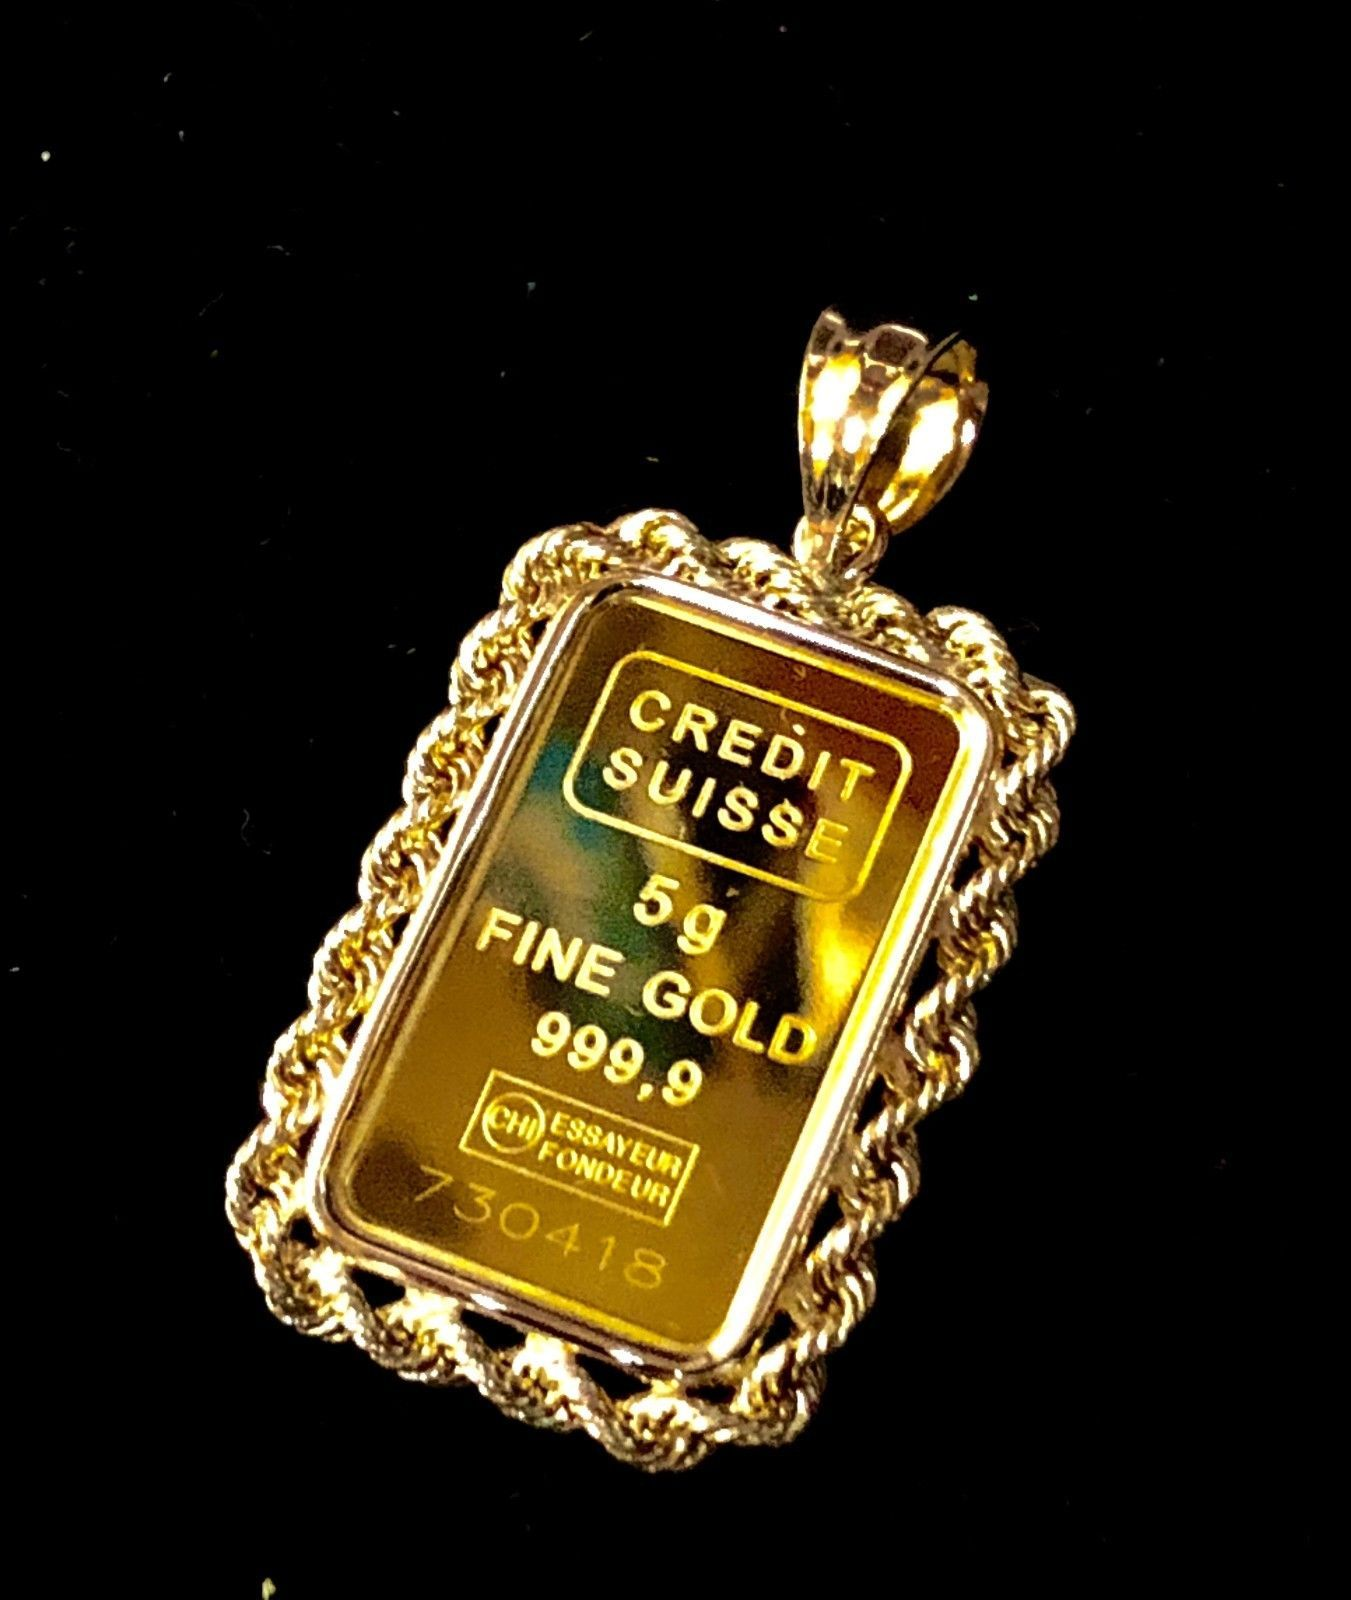 24k Fine Gold Suisse 5gr Bullion Ingot 14k Framed Charm Rope Pendant Gold Chain With Pendant Rope Pendant Gold